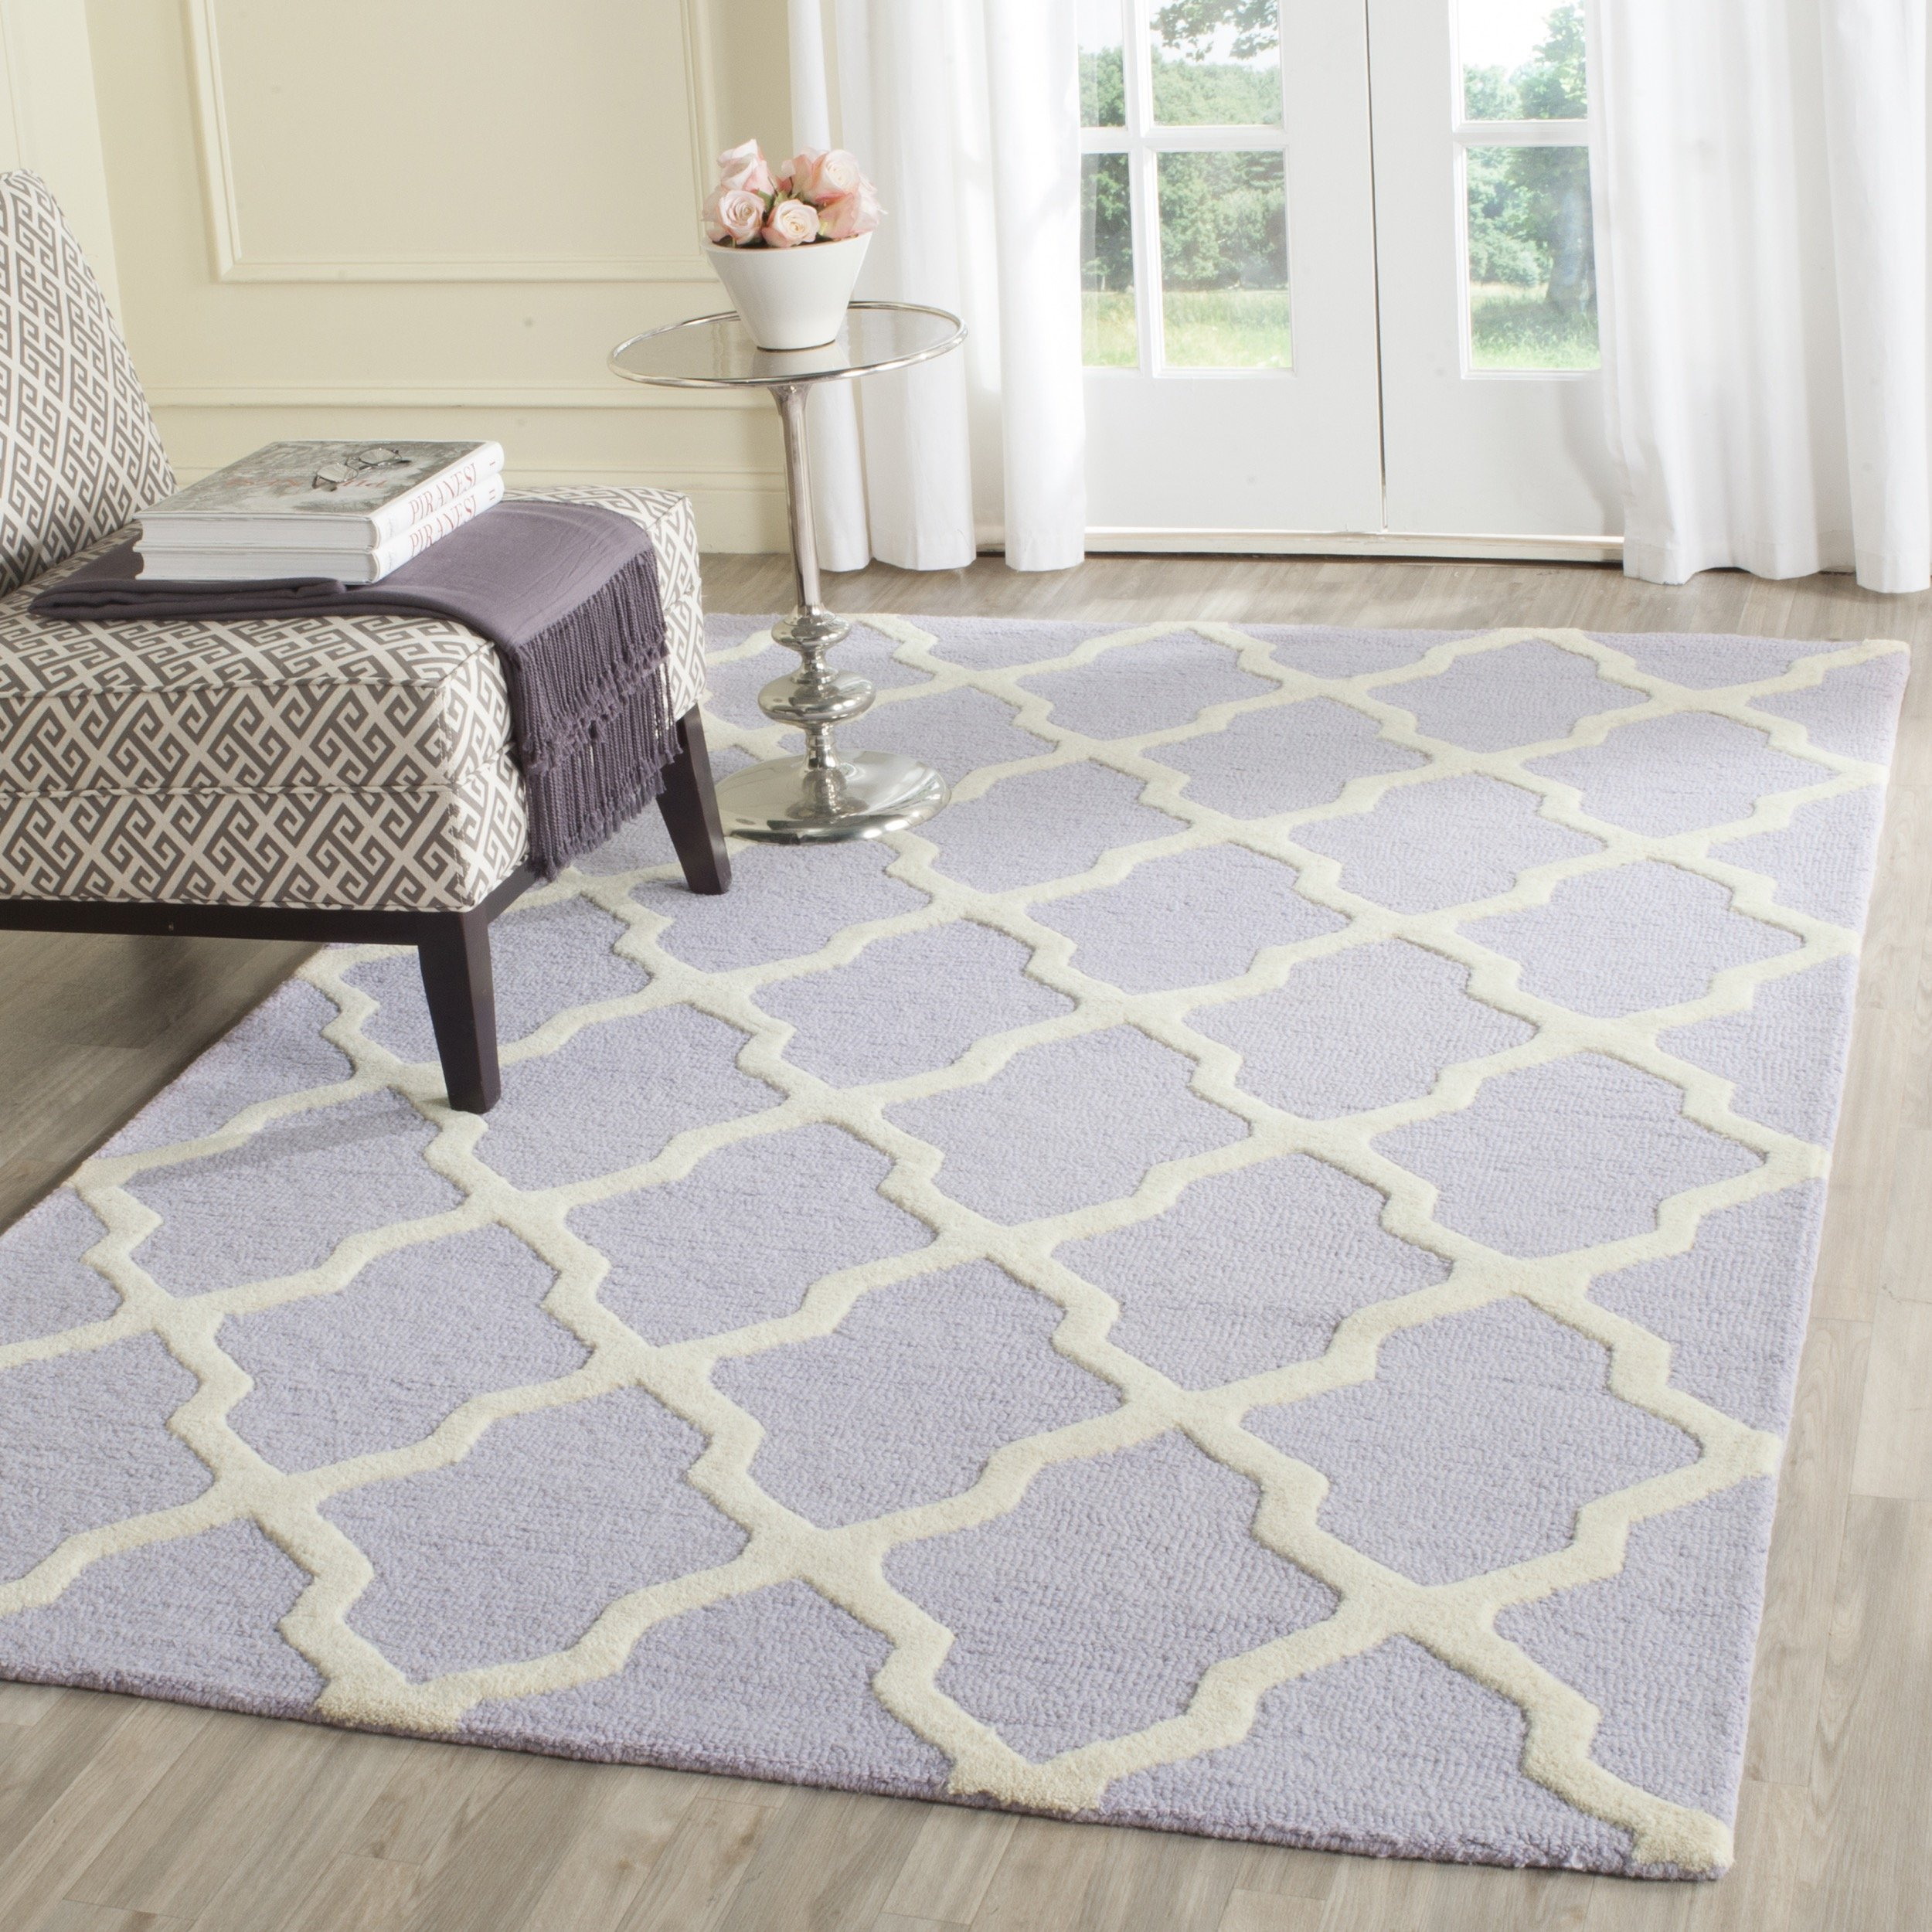 Safavieh Cambridge Collection CAM121C Handmade Moroccan Geometric Lavender and Ivory Premium Wool Area Rug (8' x 10')